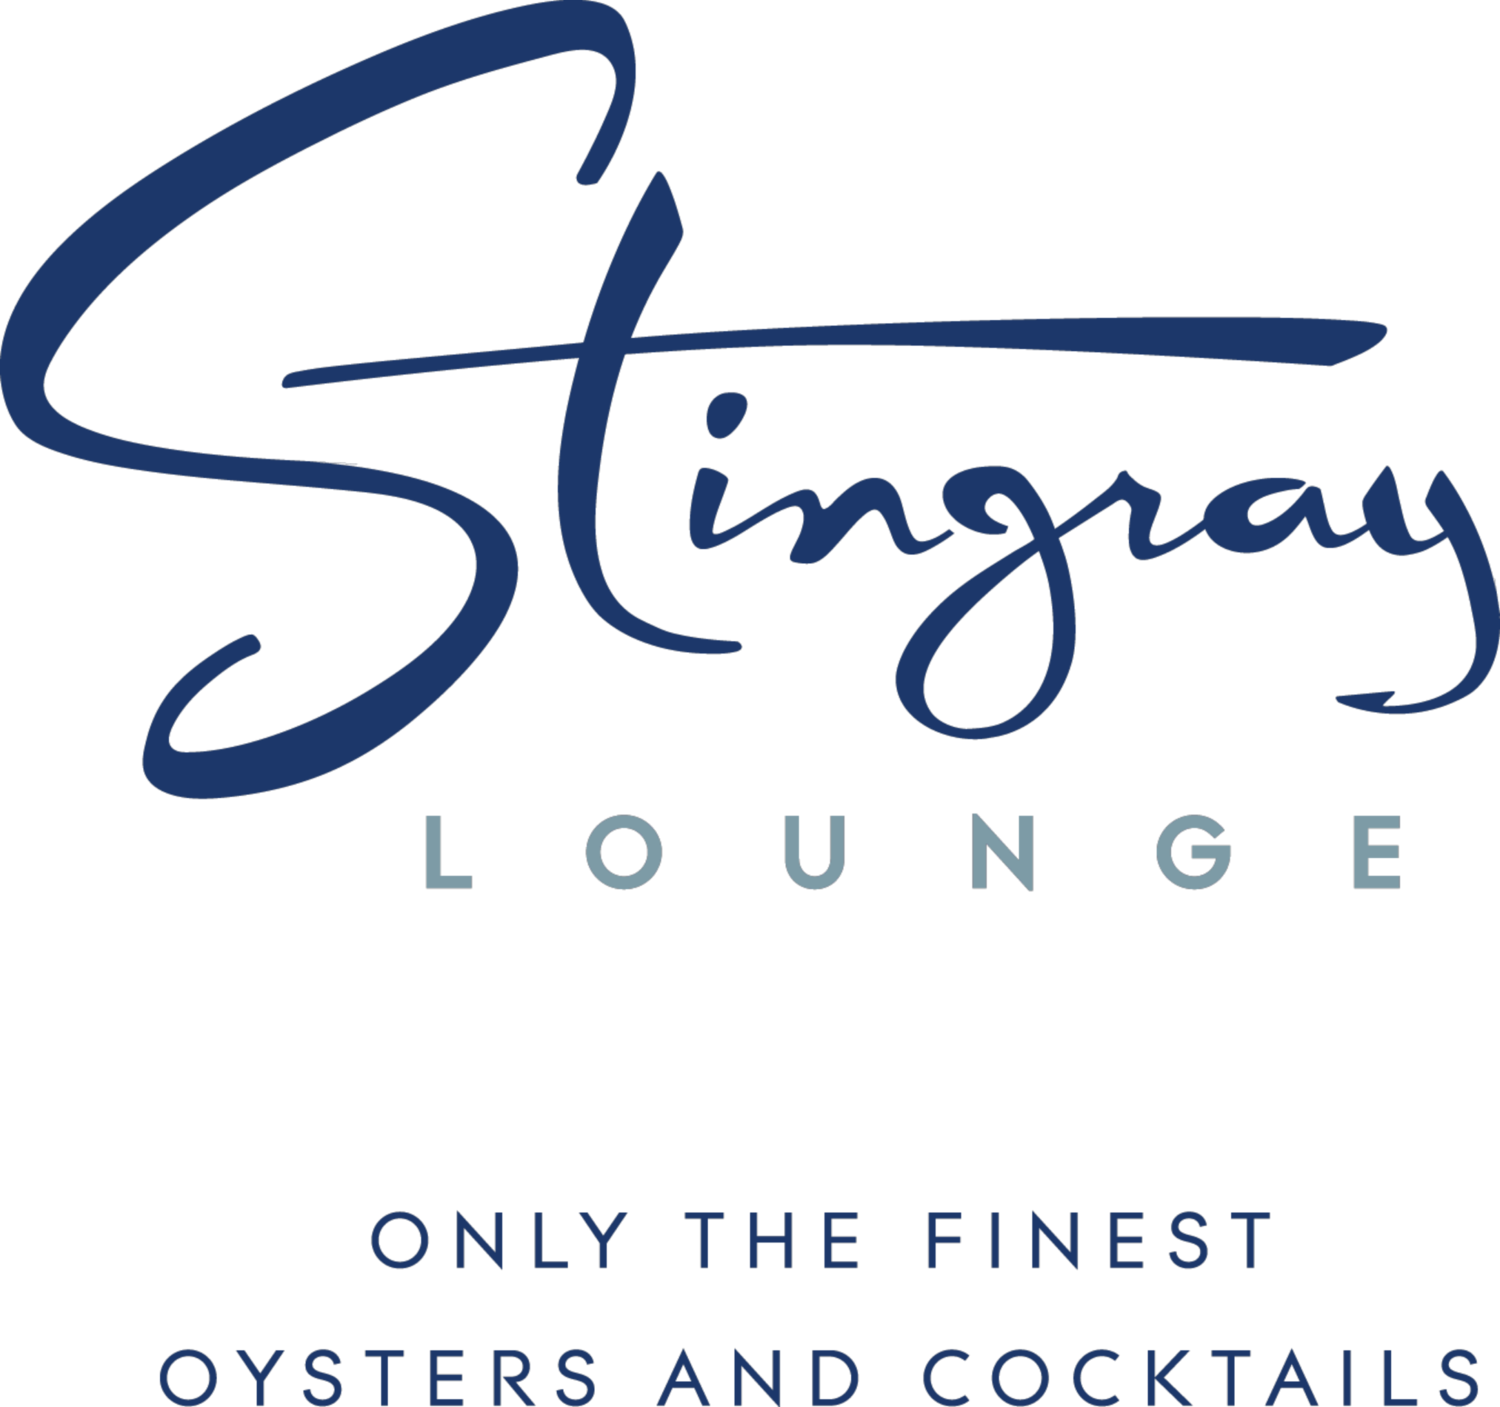 Stingray Lounge